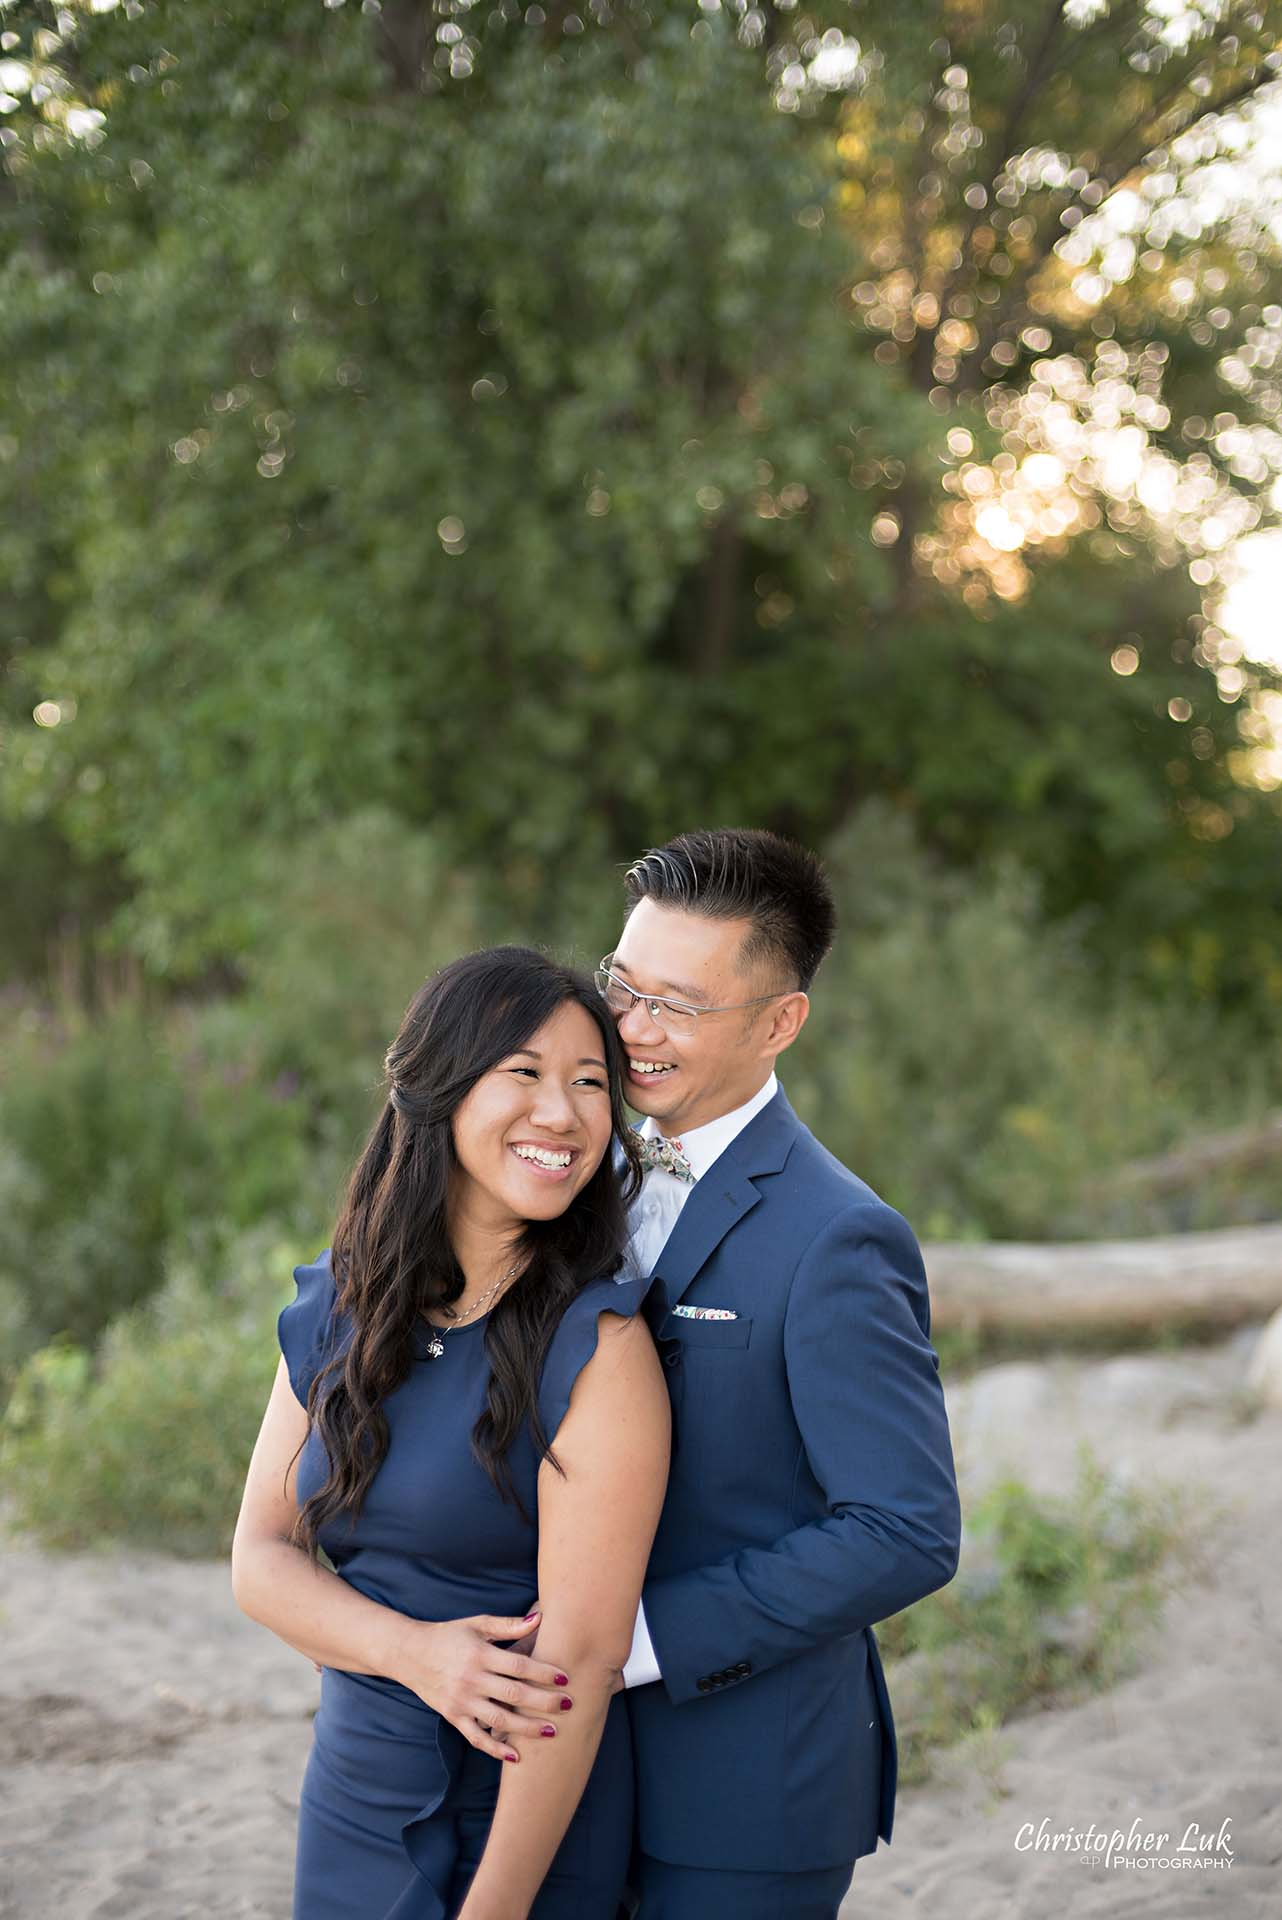 Christopher Luk Toronto Wedding Photographer - Engagement Photography - Sunnyside Pavilion Park Beach Boardwalk Toronto - Bride and Groom Natural Candid Photojournalistic Hug Smile Trees Close Love Hands Hold